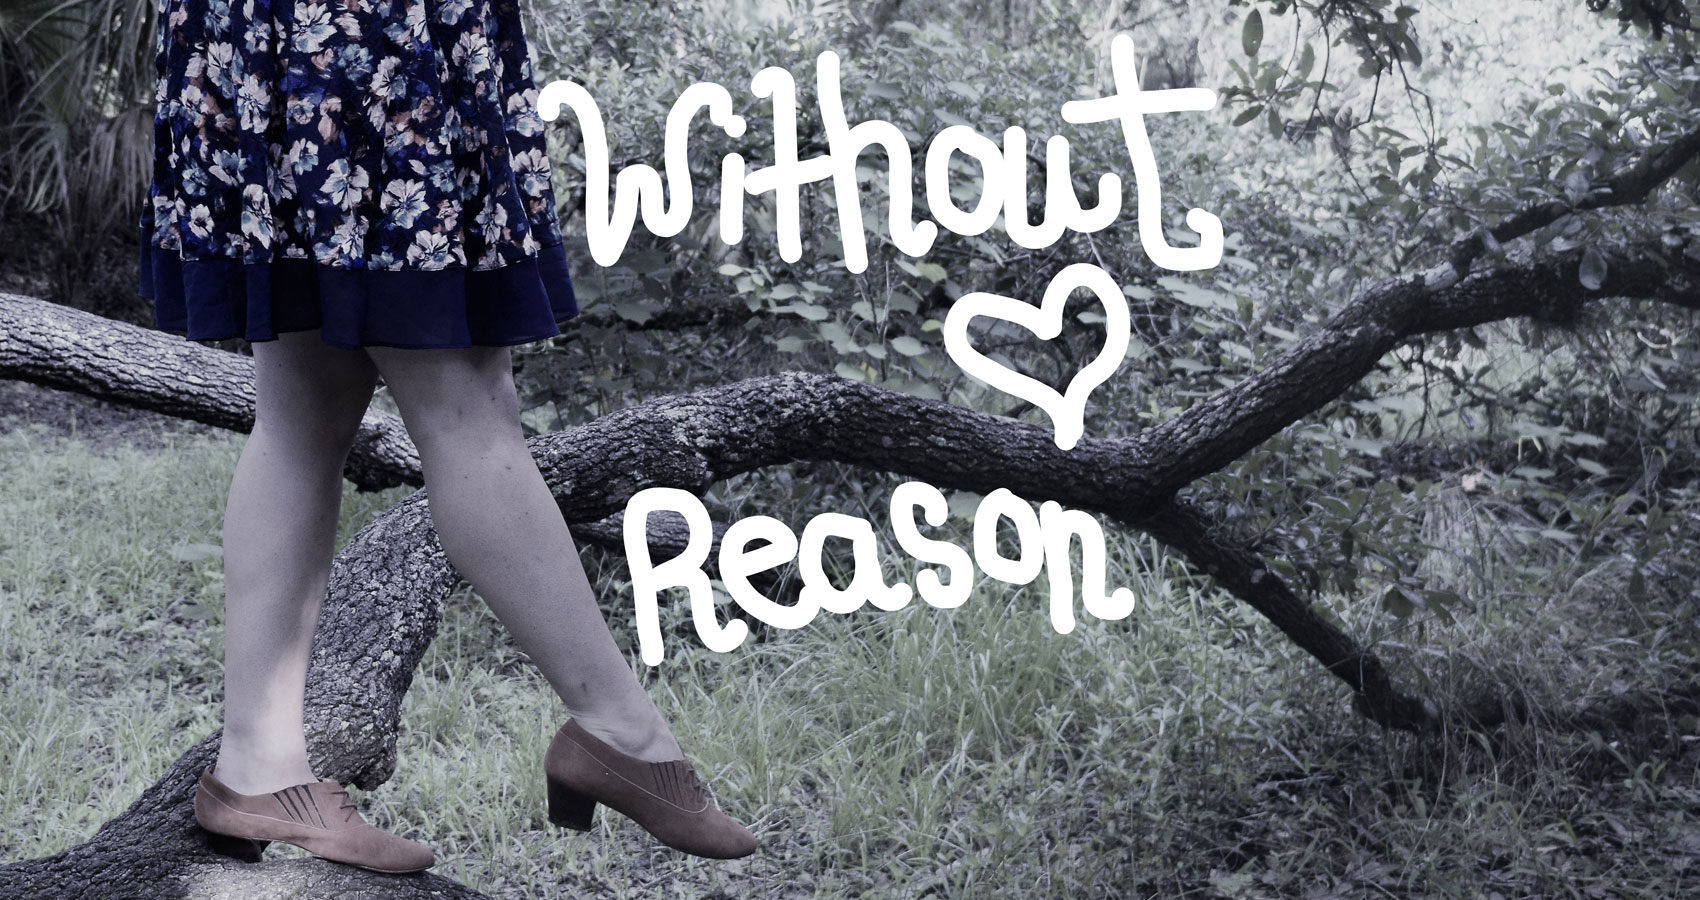 Without Reason series by Alyssa Brocker at Spillwords.com